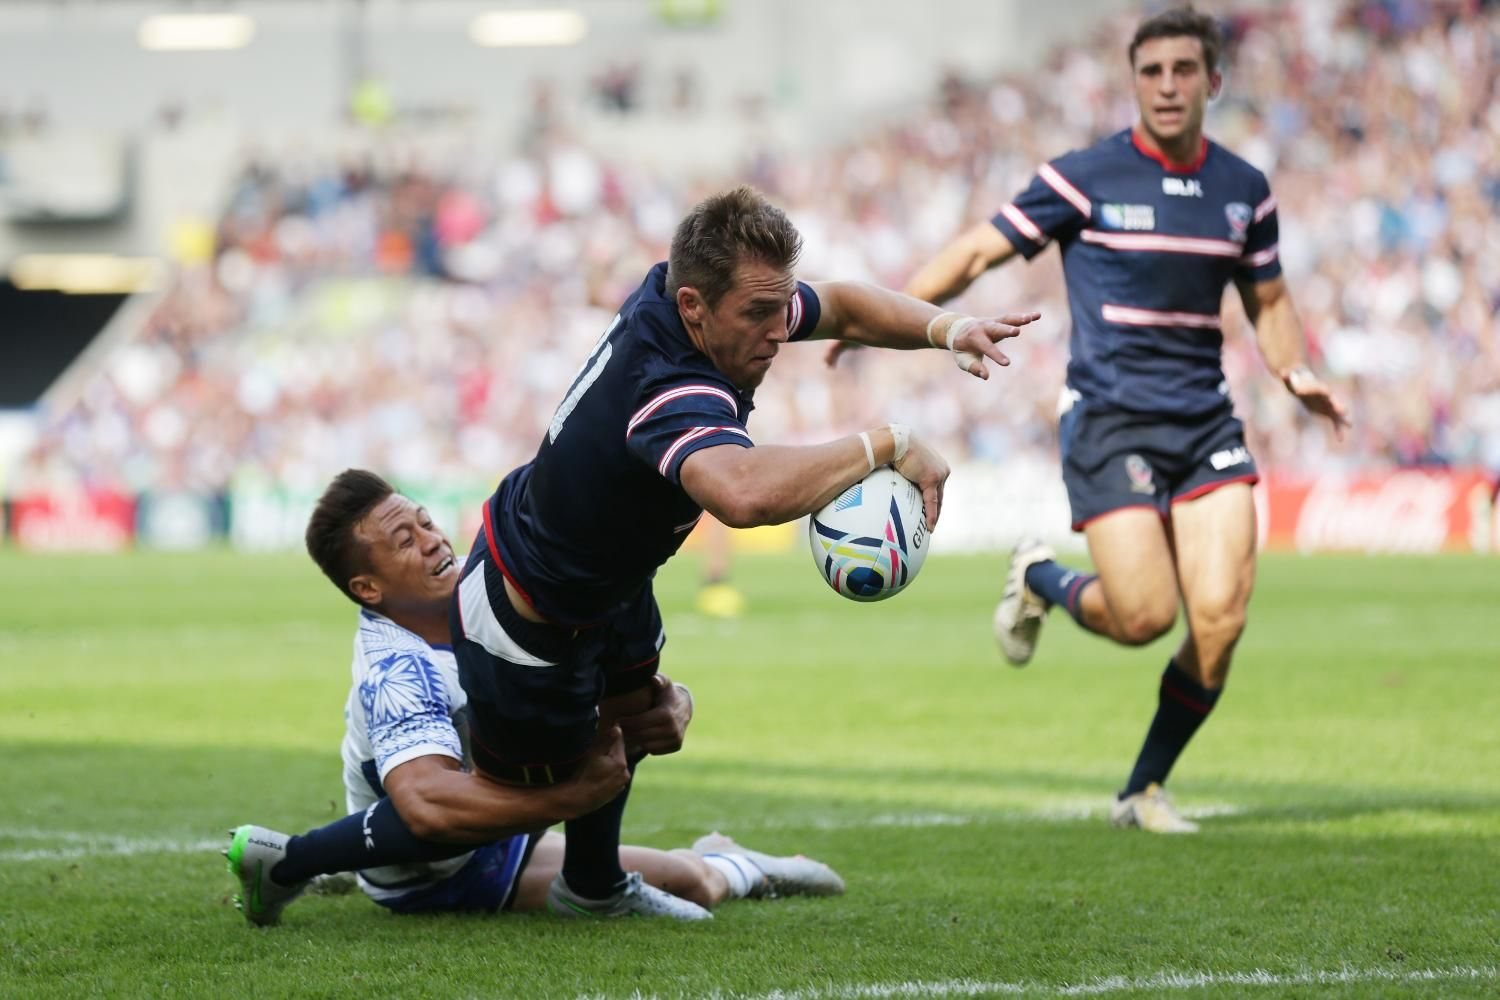 Rugby World Cup 2015 Match Centre Match 6 Rugby World Cup World Cup 2015 Rugby World Cup